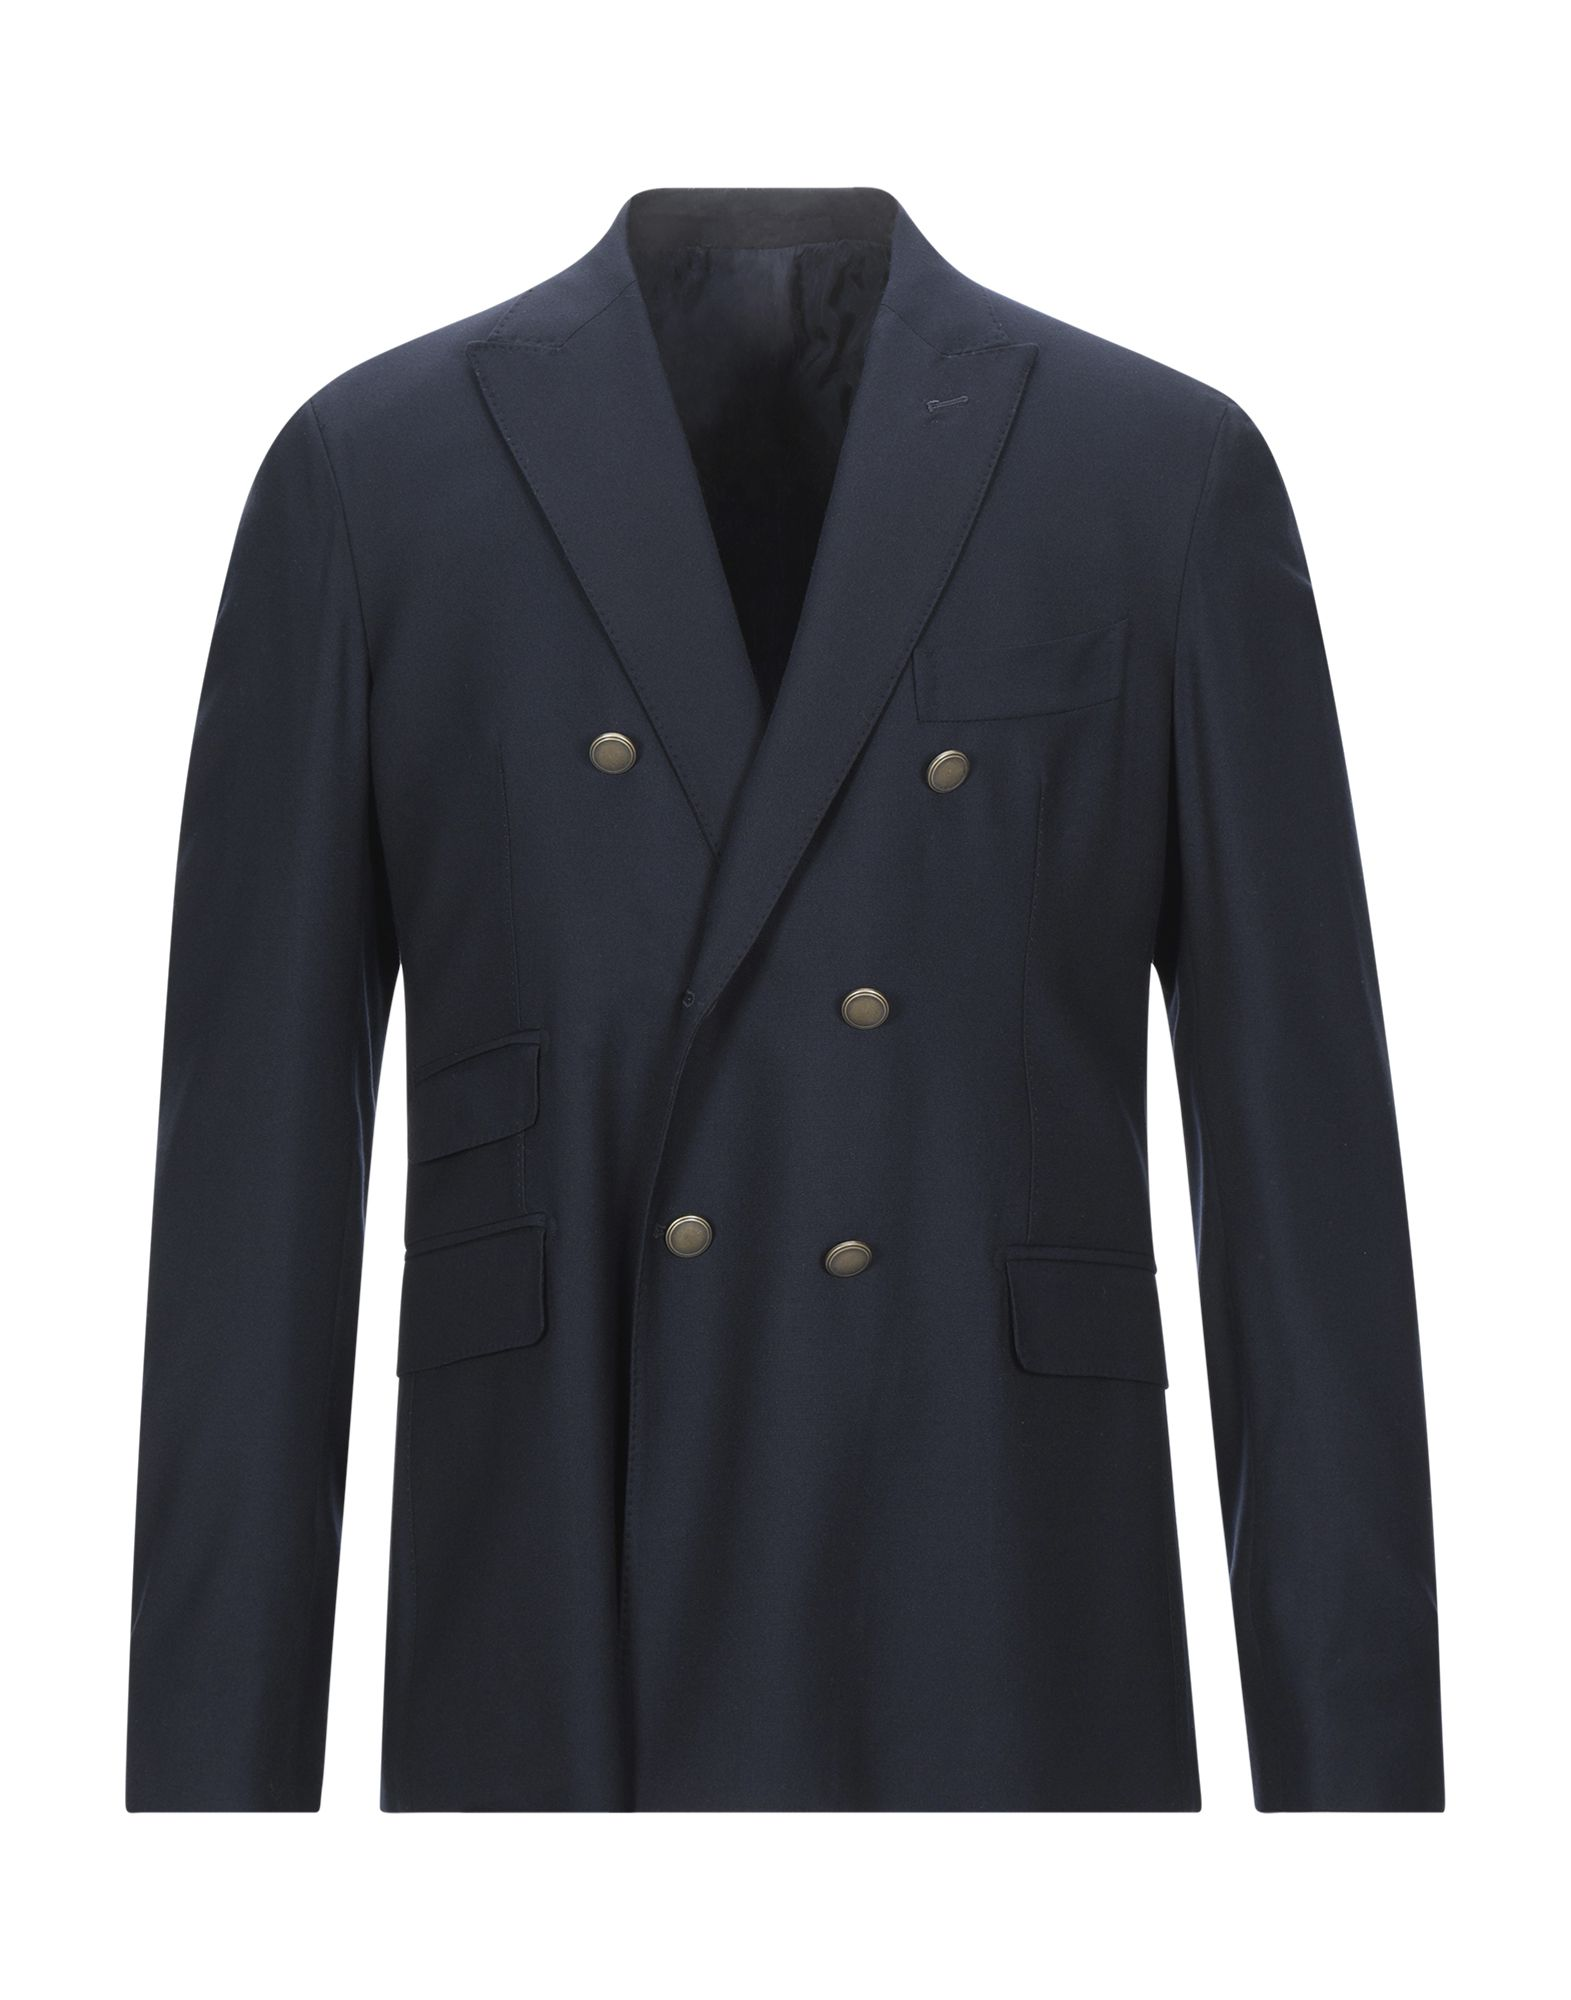 ELEVENTY Suit jackets. flannel, no appliqués, solid color, multipockets, single chest pocket, internal pockets, button closing, lapel collar, double-breasted, long sleeves, semi-lined, dual back vents. 100% Wool